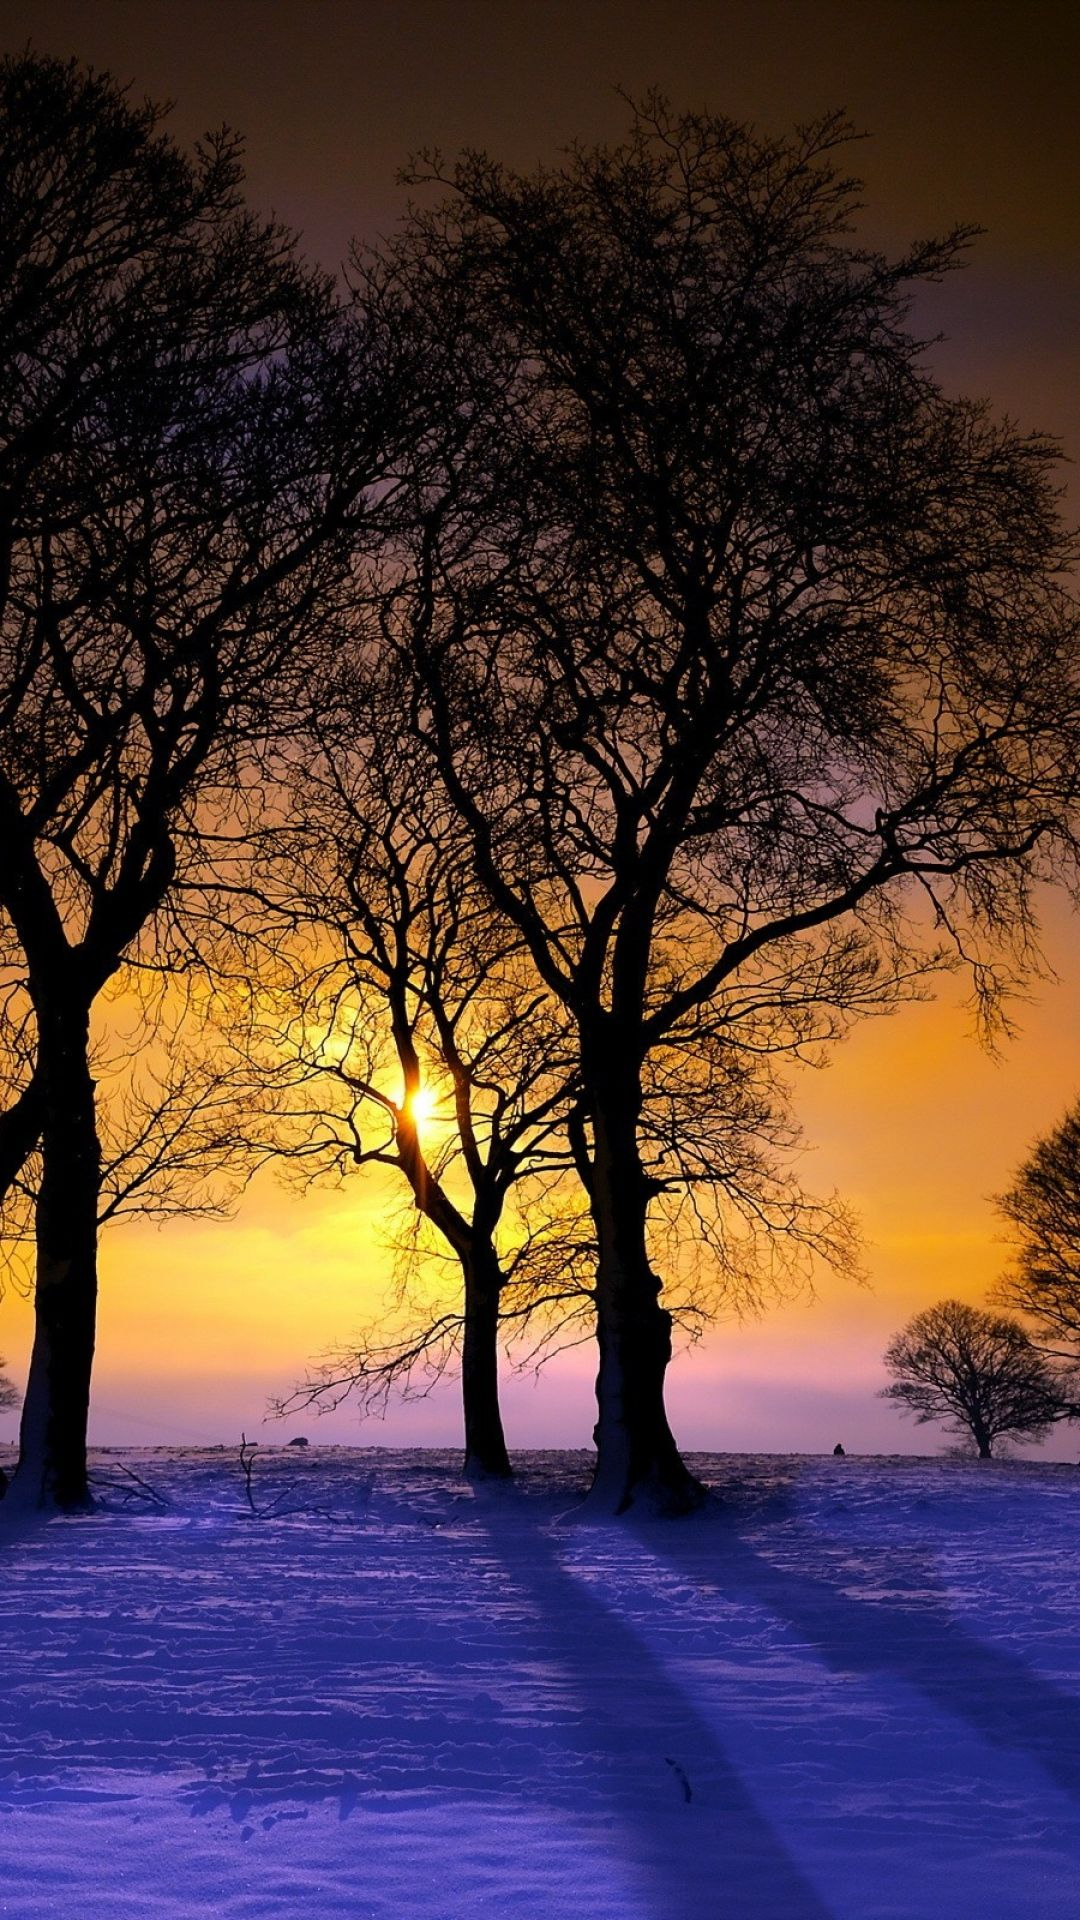 Download Wallpaper 1080x1920 Sunset Winter Trees Landscape Sony Xperia Z1 ZL Z Samsung Galaxy S4 HTC One HD Background